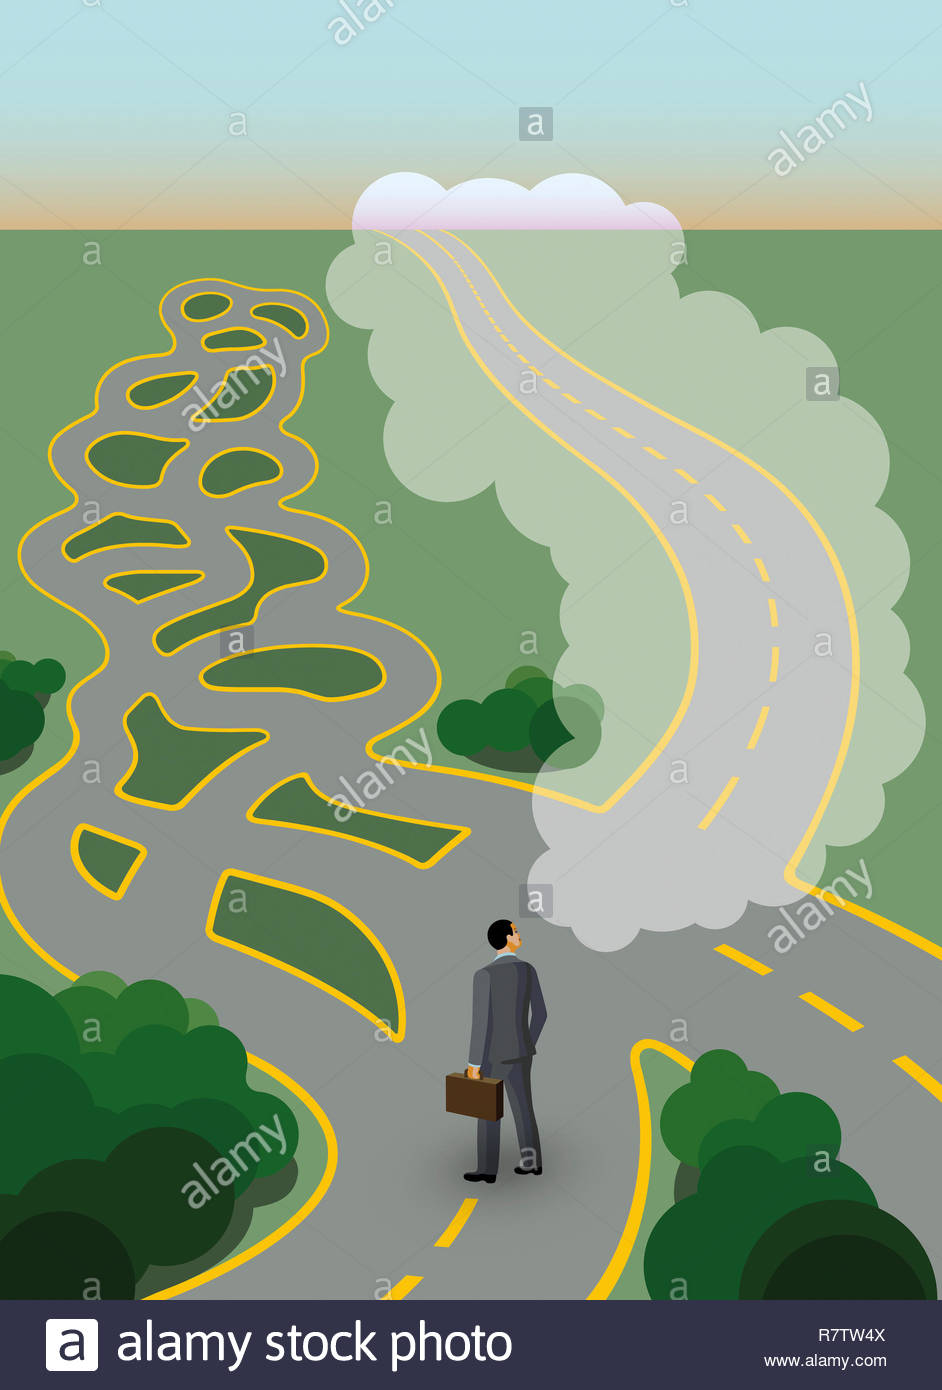 Businessman at crossroads with complex maze but dreaming of straight path Stock Photo